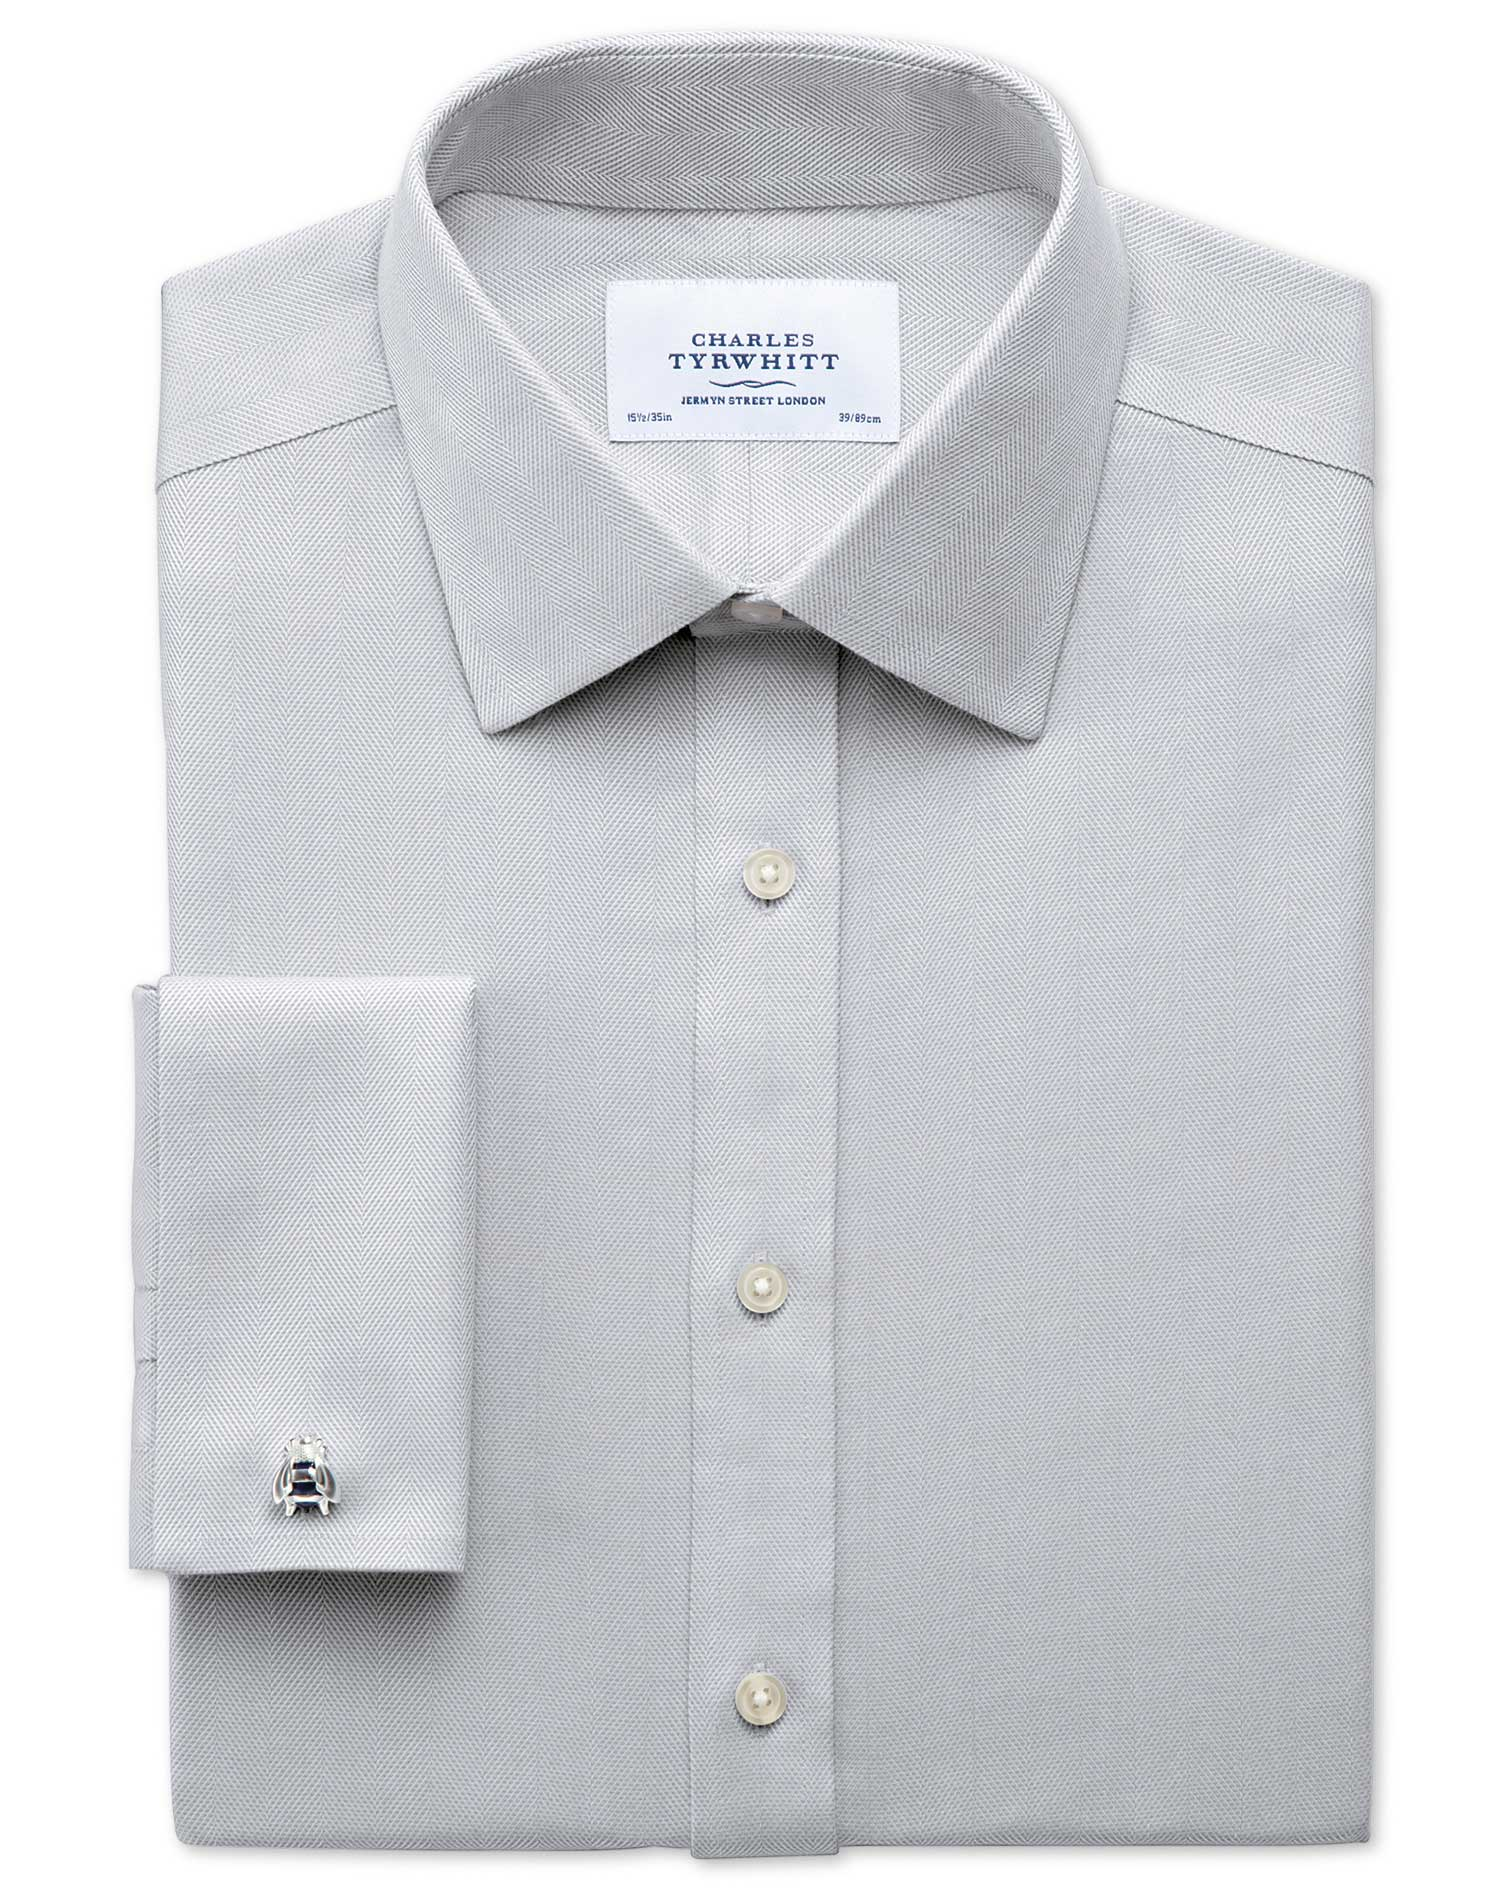 Classic Fit Non-Iron Herringbone Grey Cotton Formal Shirt Double Cuff Size 15/34 by Charles Tyrwhitt